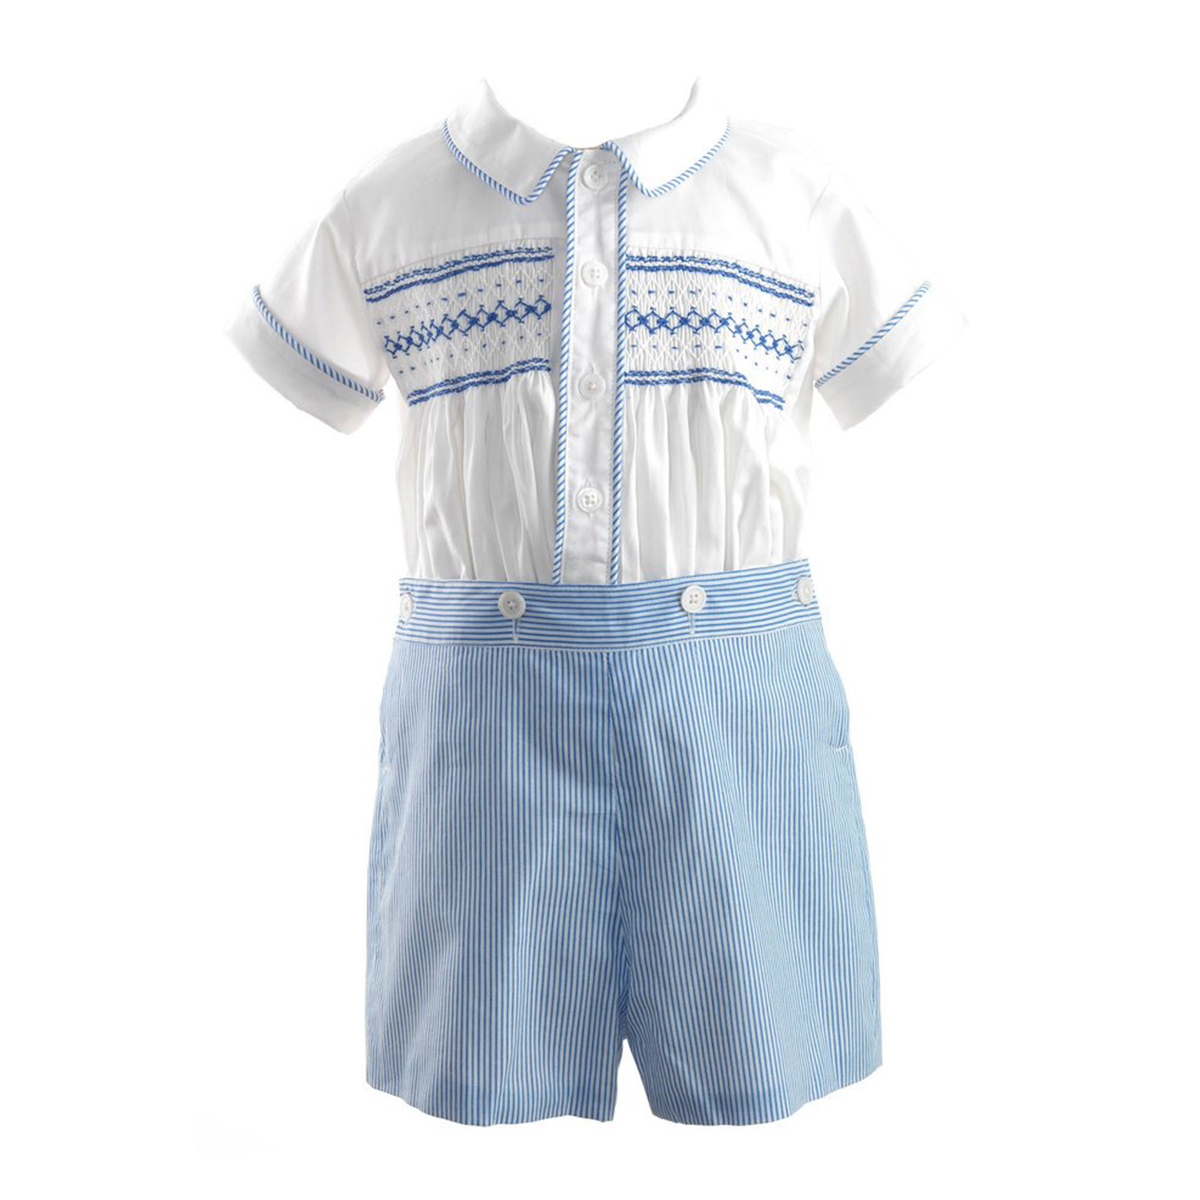 Rachel Riley Baby/Toddler Striped Smocked Set